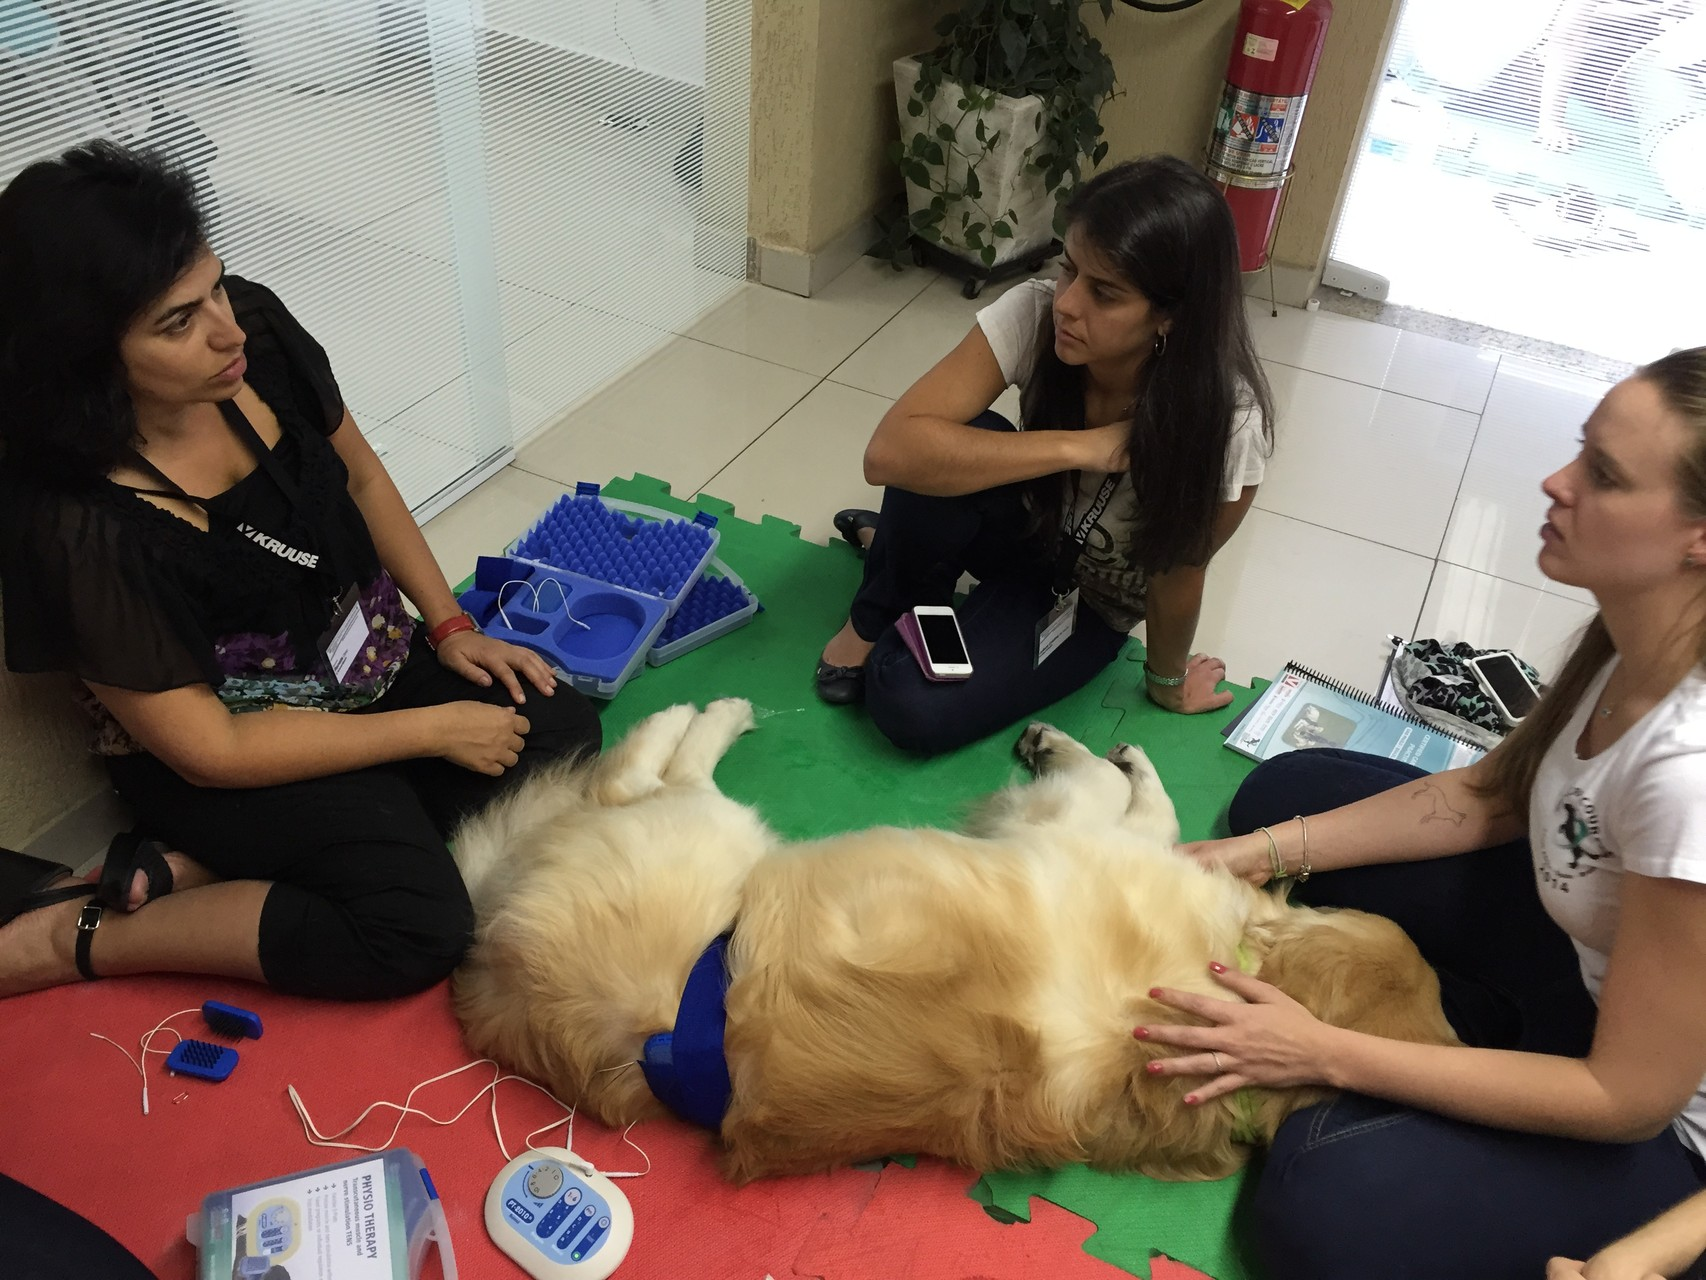 Practical training at the course for canine physical therapy and rehabilitation in Brazil